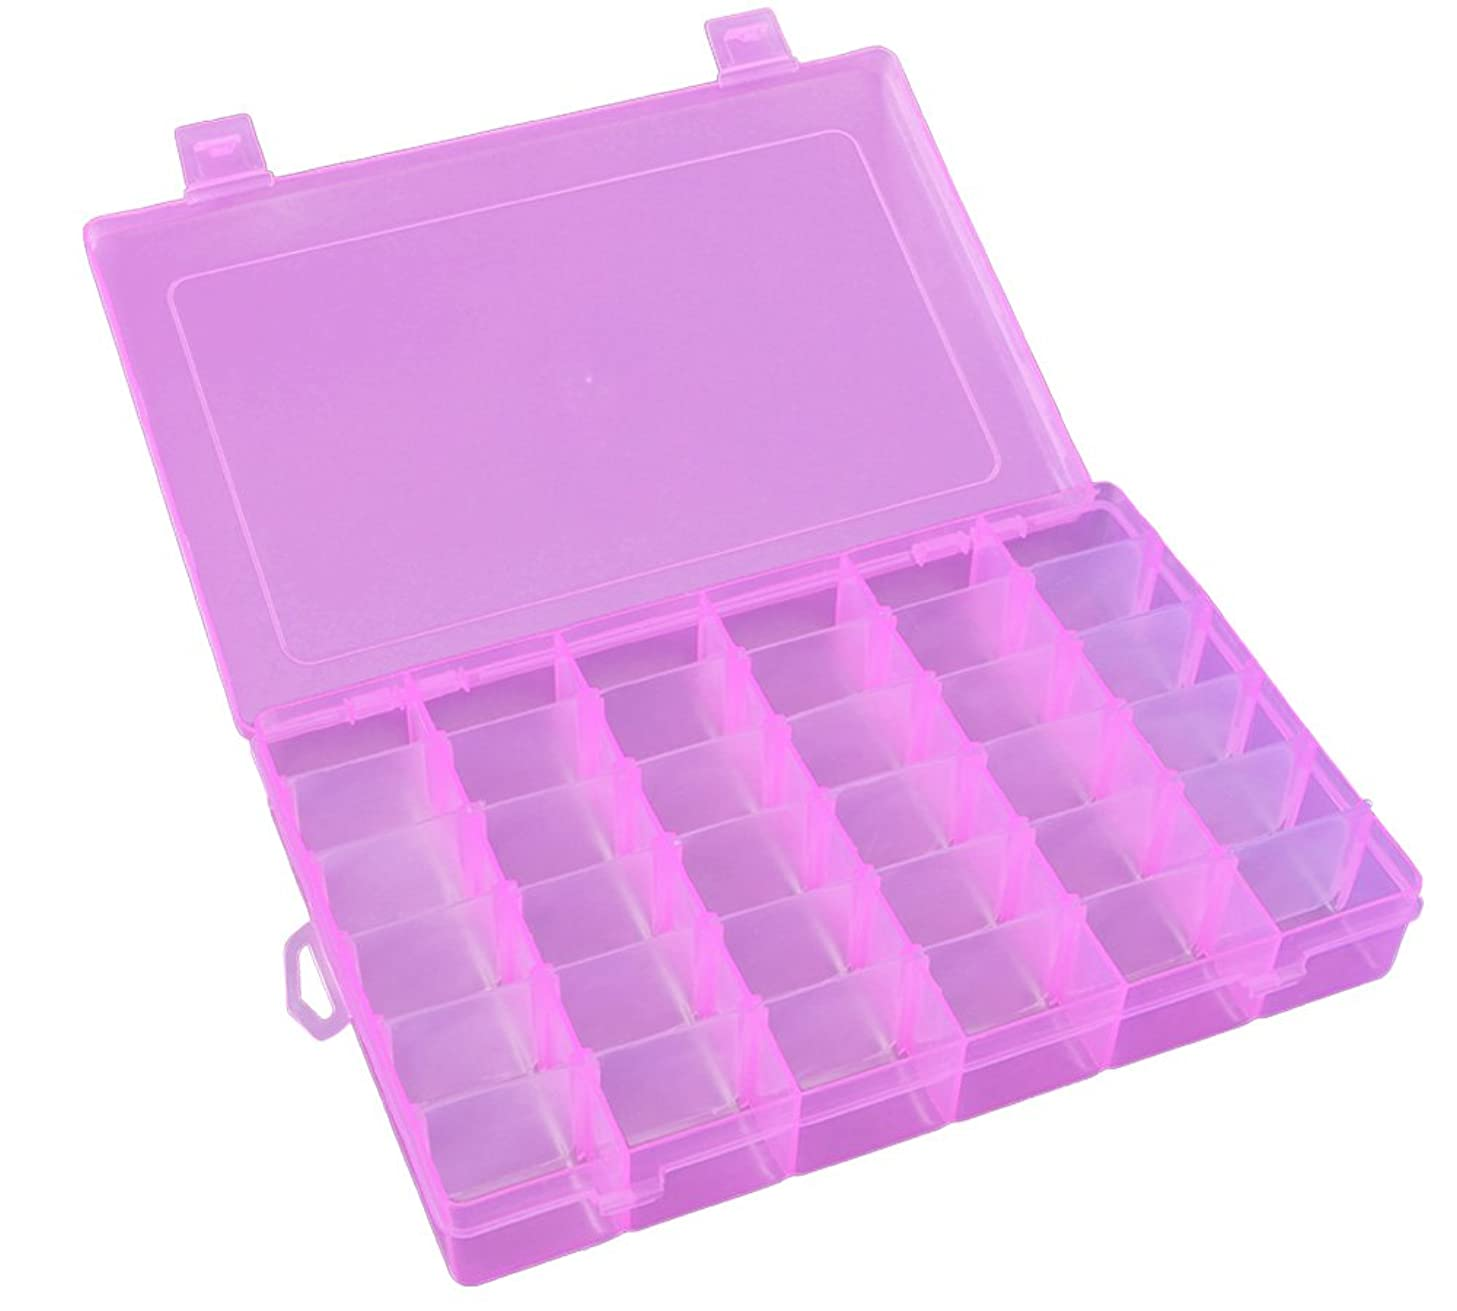 Qualsen Transparent Bead Storage Jewelry Organizer Storage Container Plastic Organizer Box with Adjustable Dividers for Sorting Earrings, Rings, Beads and Other Mini Goods 36 Grid 1PC (Pink)